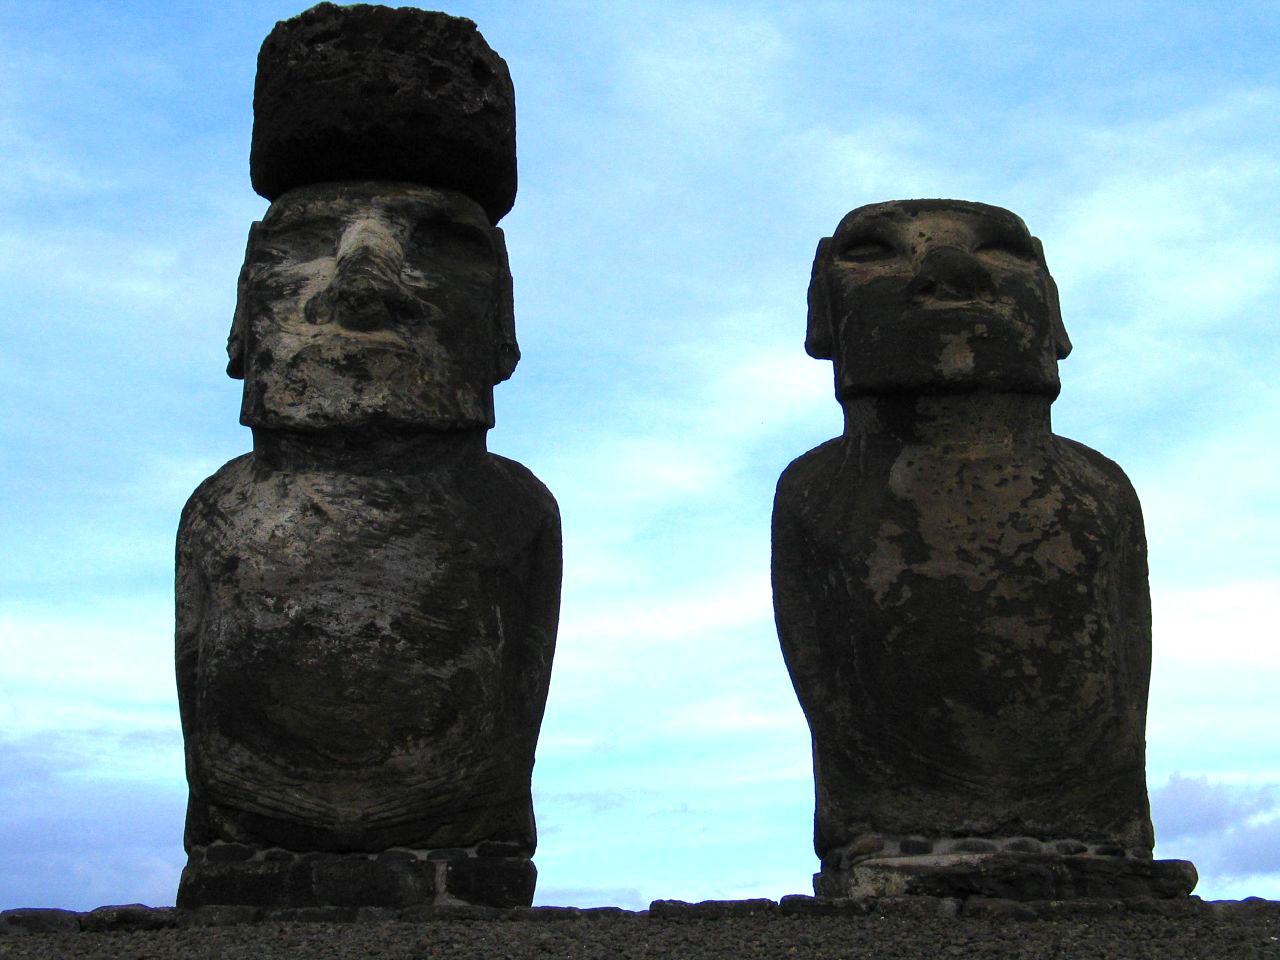 rapa nui11 Gigantic Moai Statues and Heads in Polynesian Easter Island